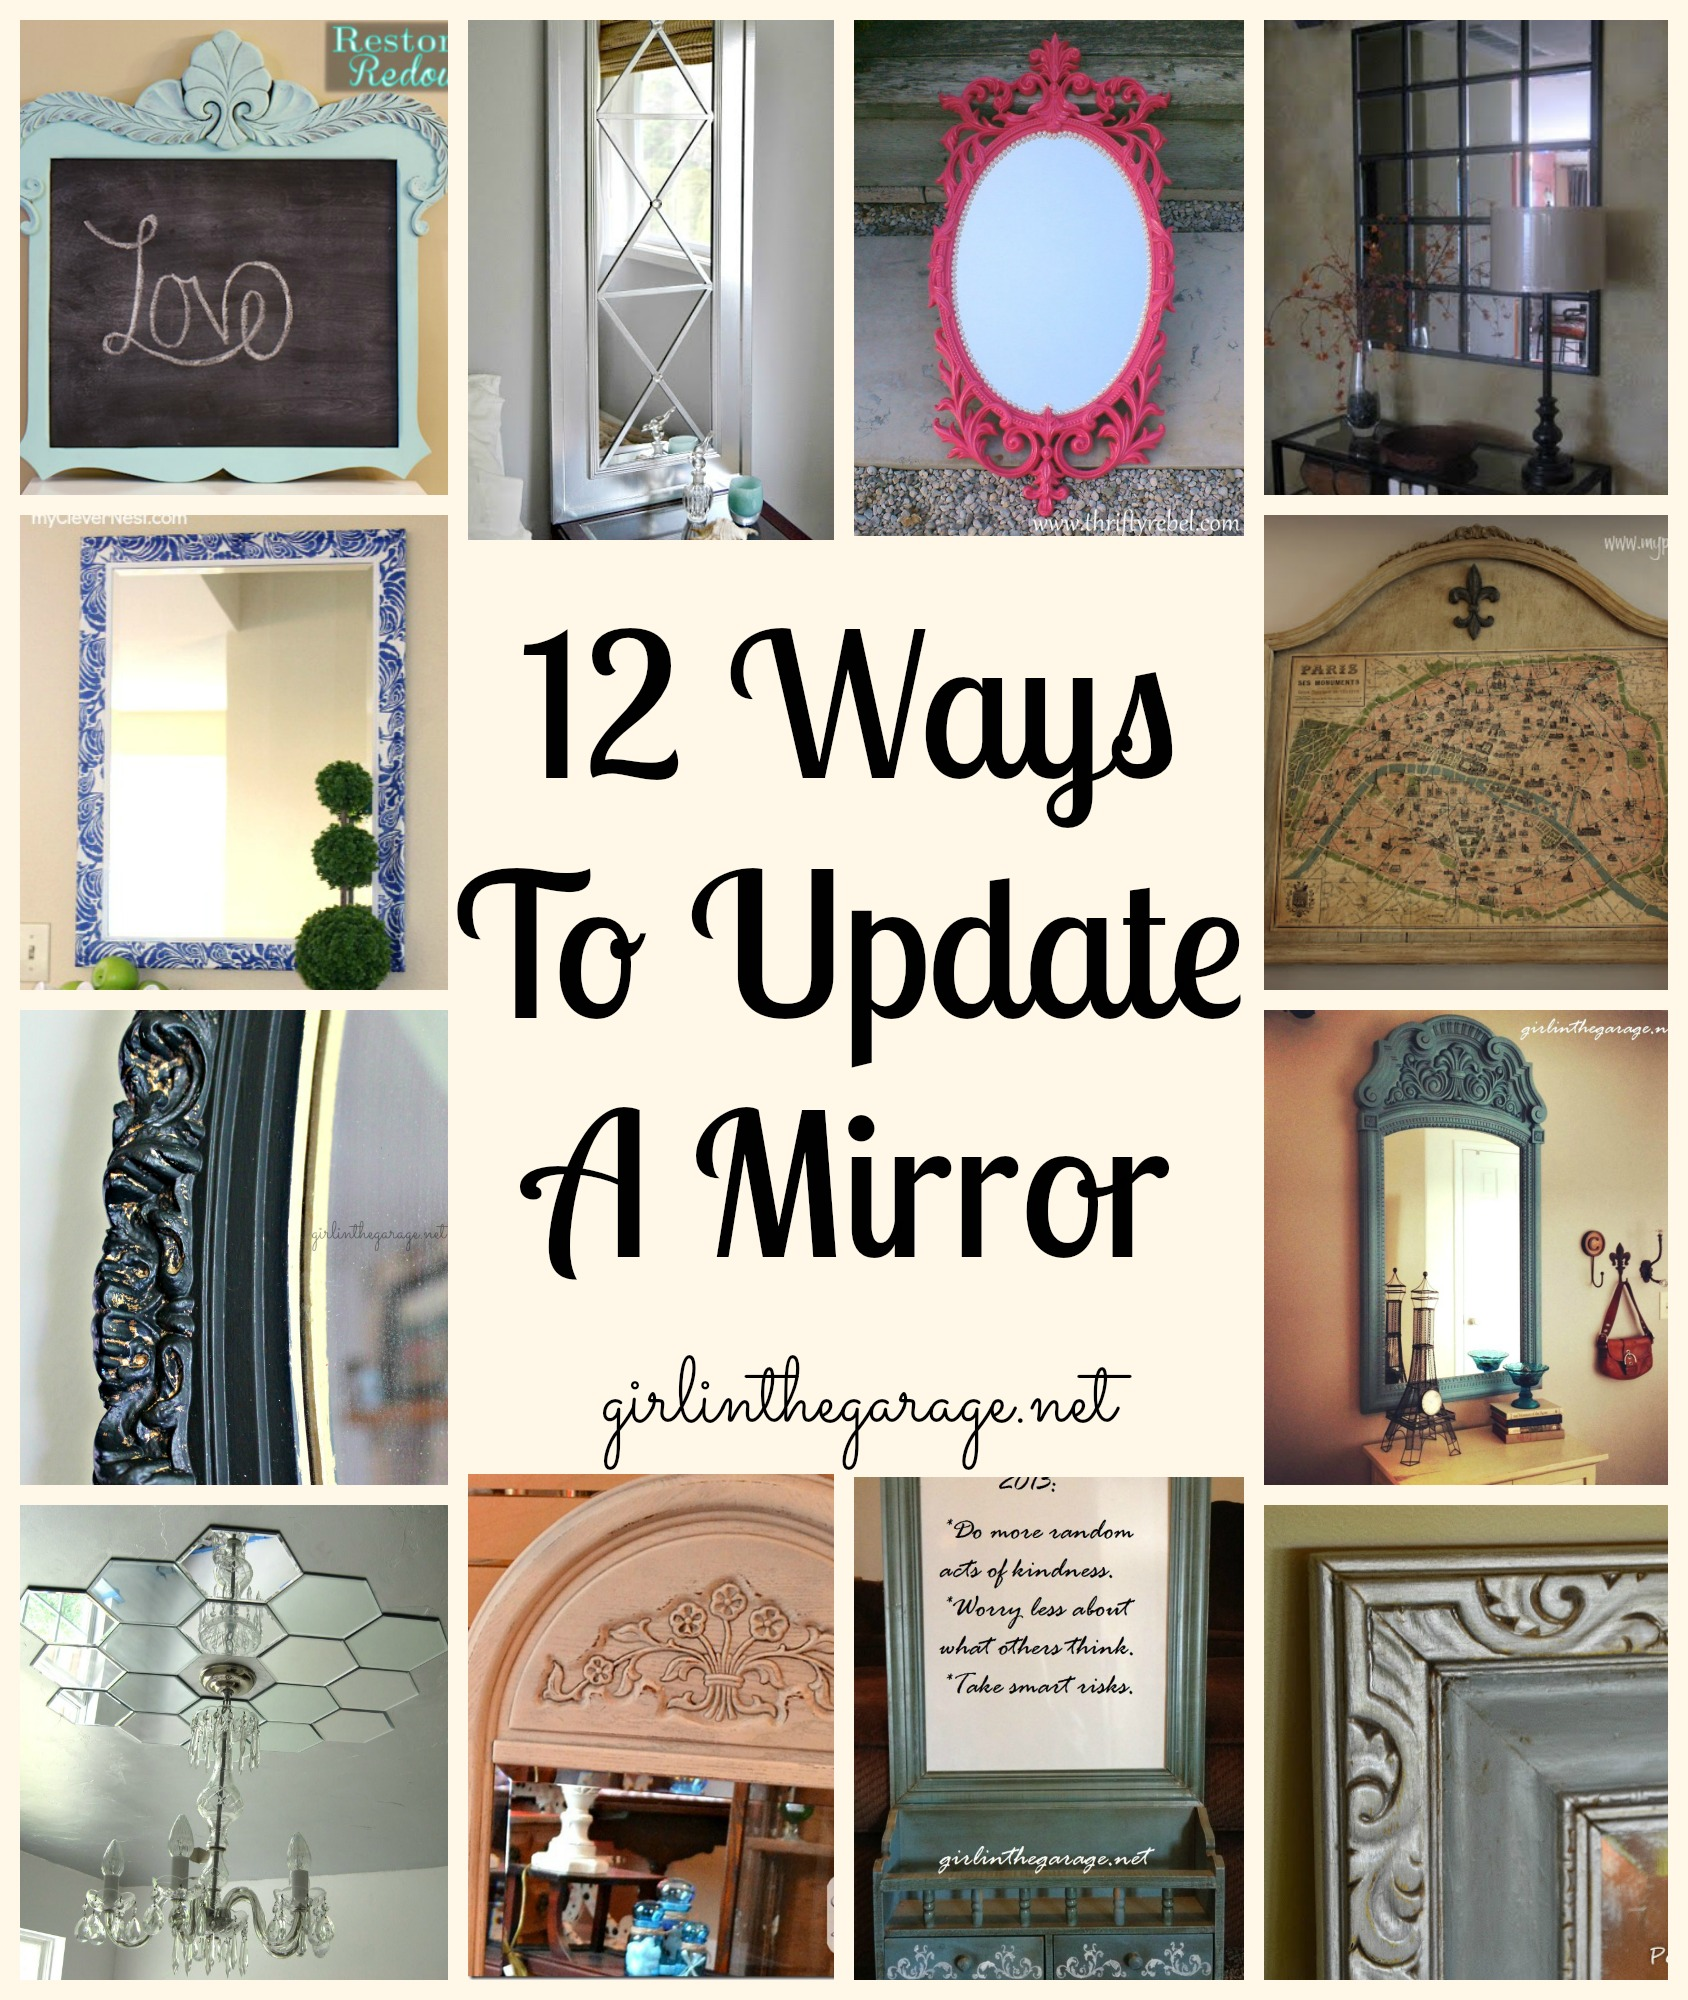 12 Ways to Update a Mirror - Girl in the Garage